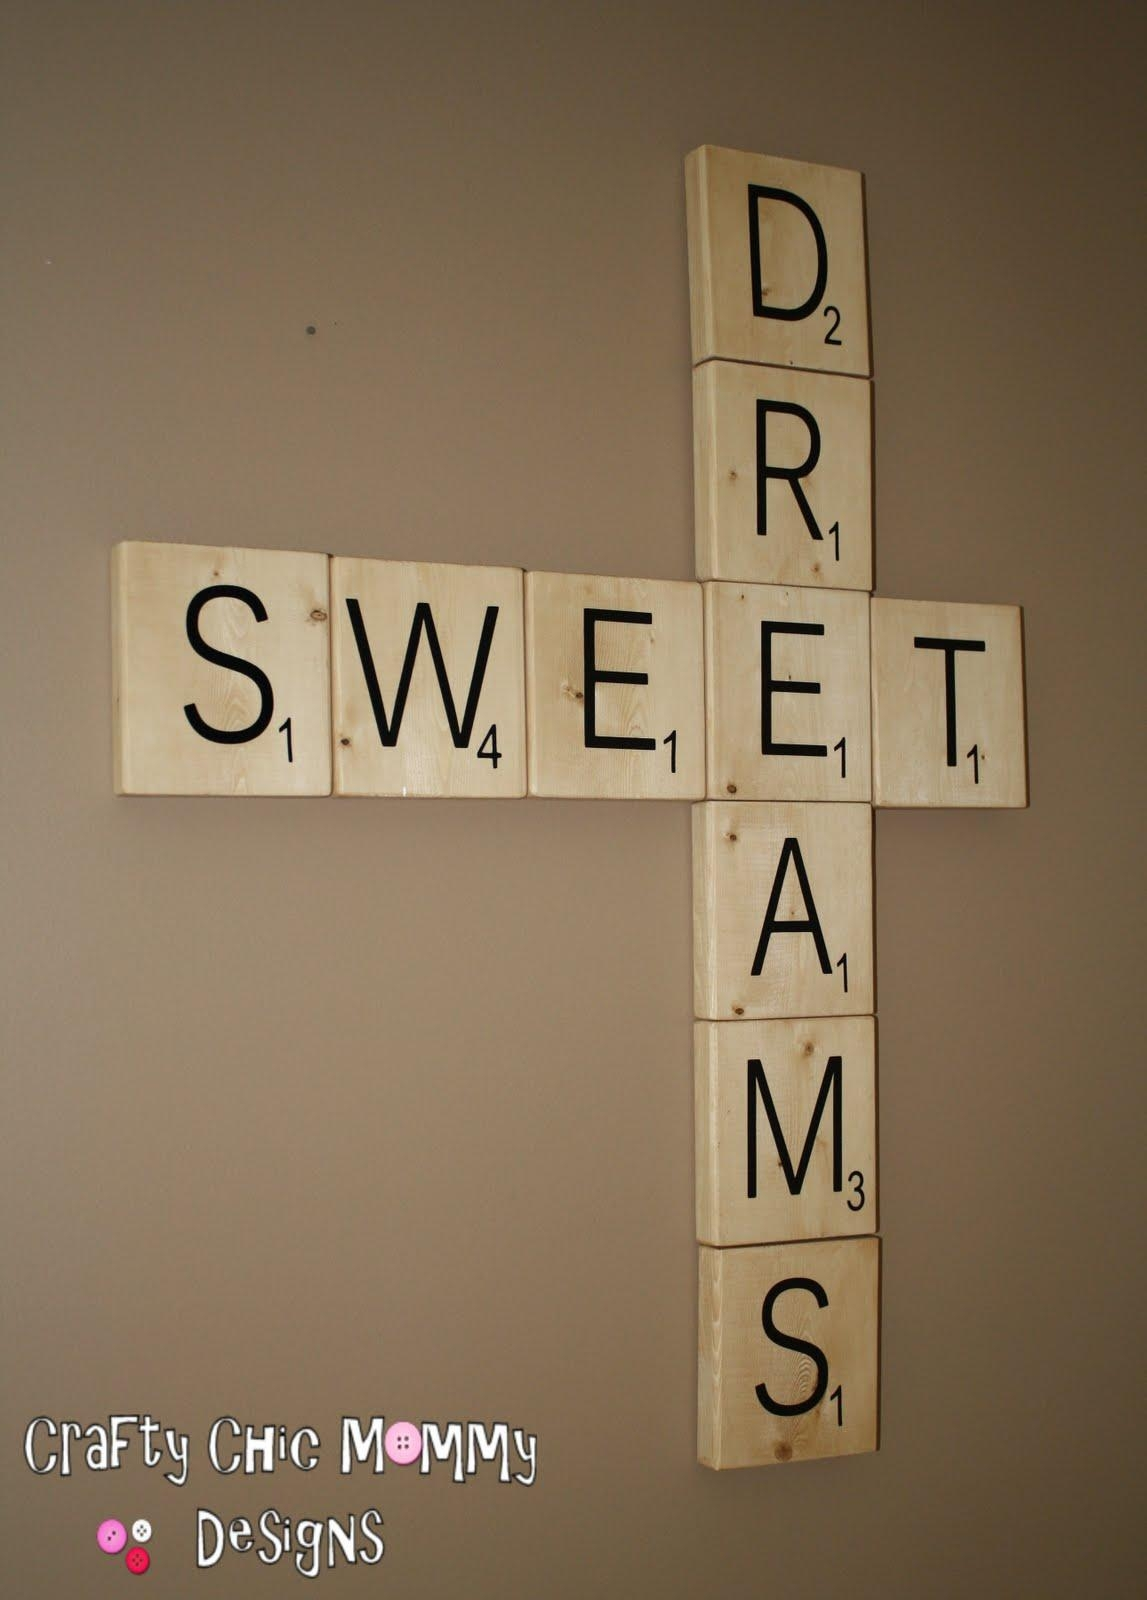 Crafty Chic Mommy: Giant Scrabble Tiles Tutorial With Regard To Scrabble Letters Wall Art (Image 4 of 20)